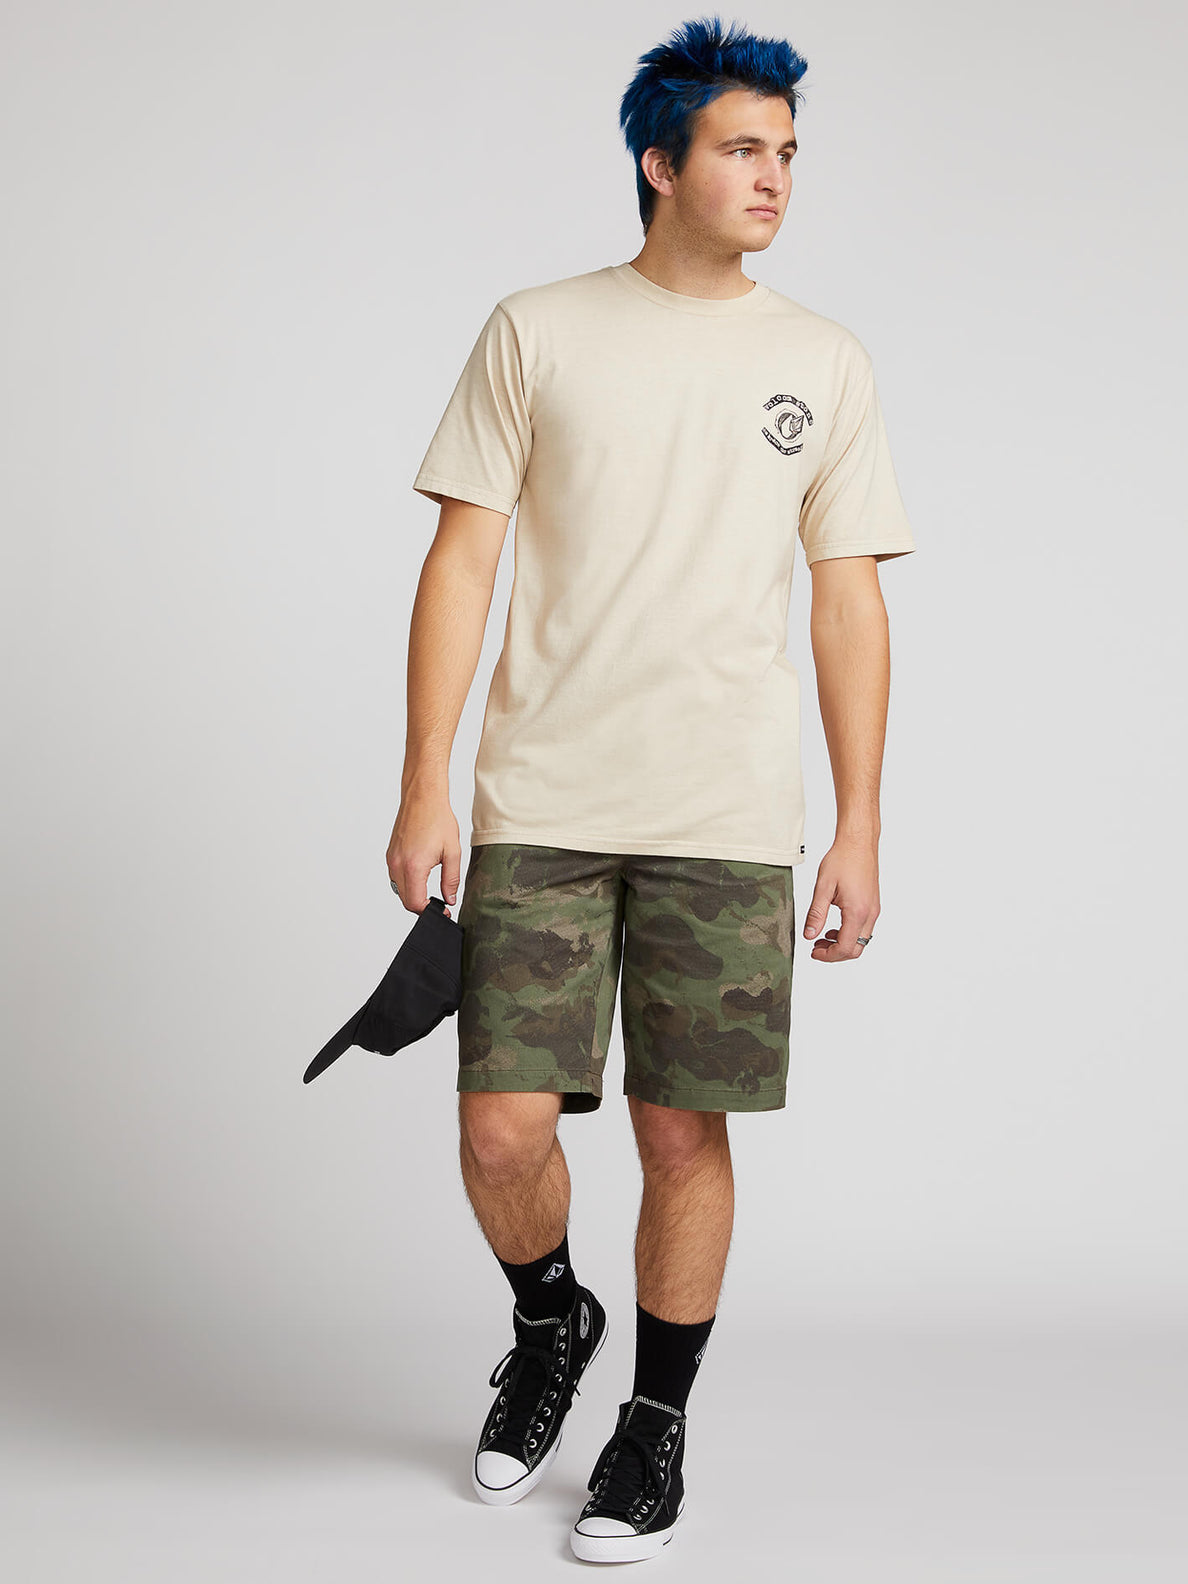 Frickin Down-low Shorts W/ Cell Phone Pocket In Camouflage, Front View